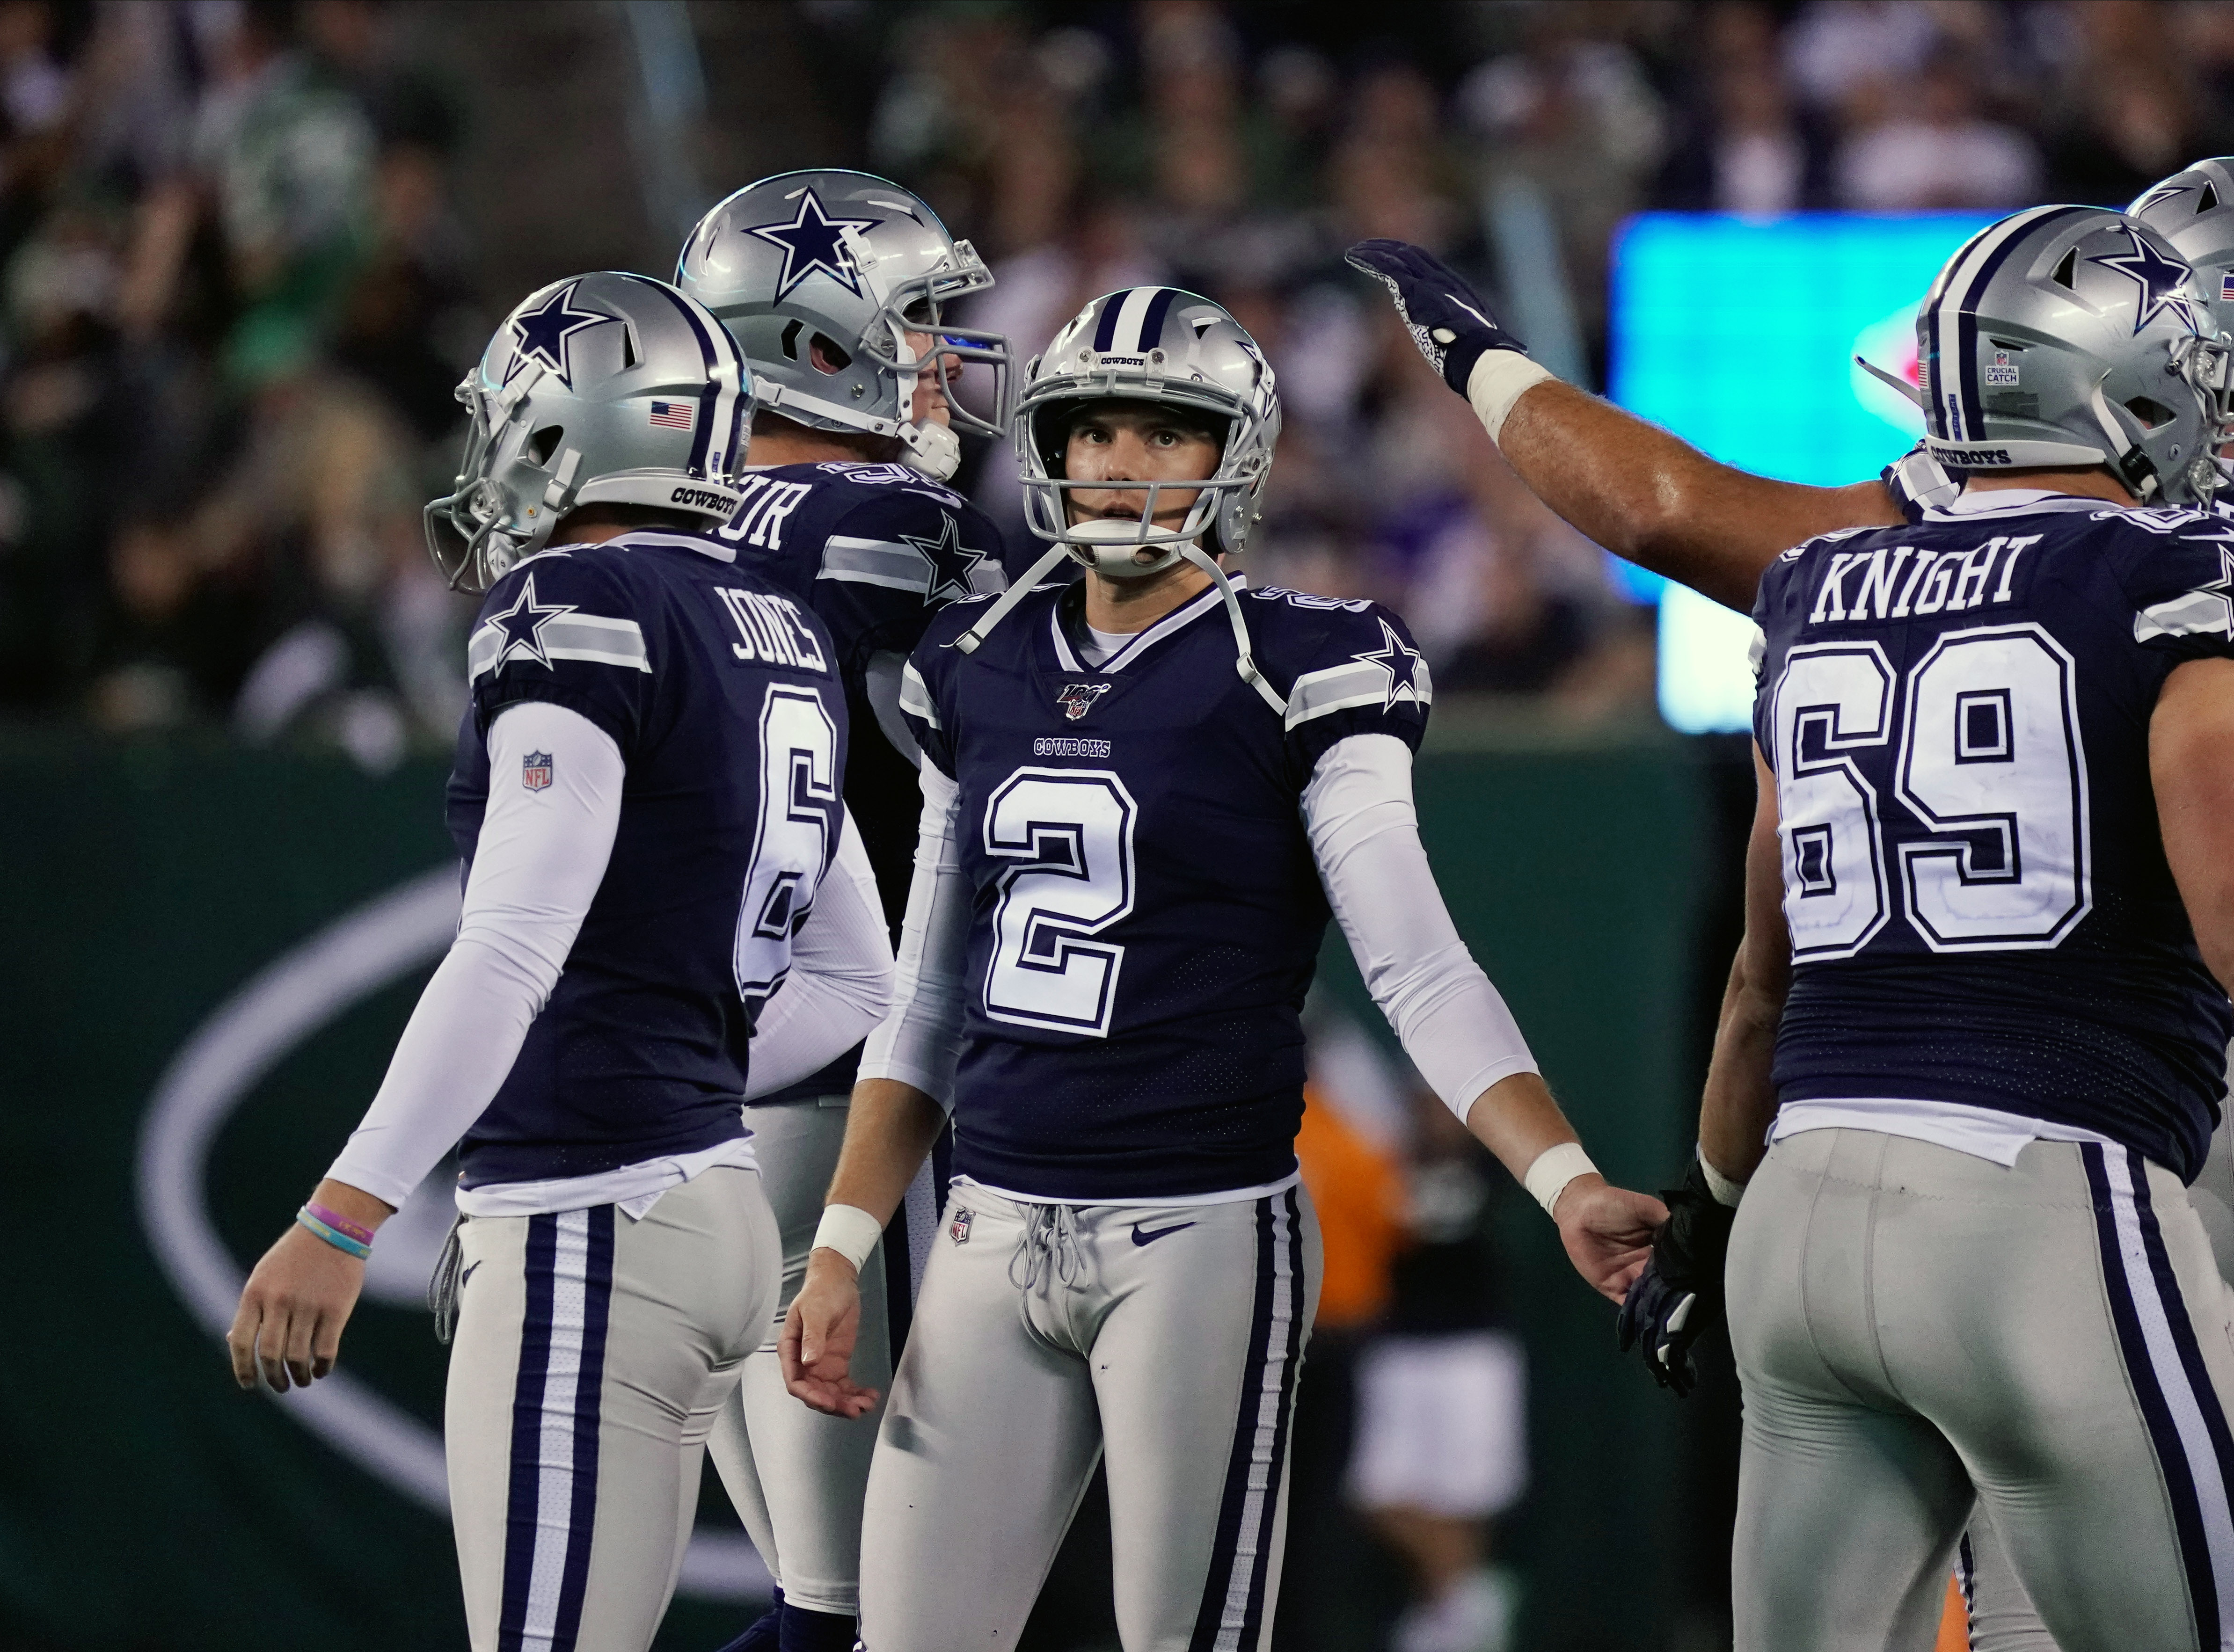 Cowboys cut kicker after he visited sick kids in the hospital